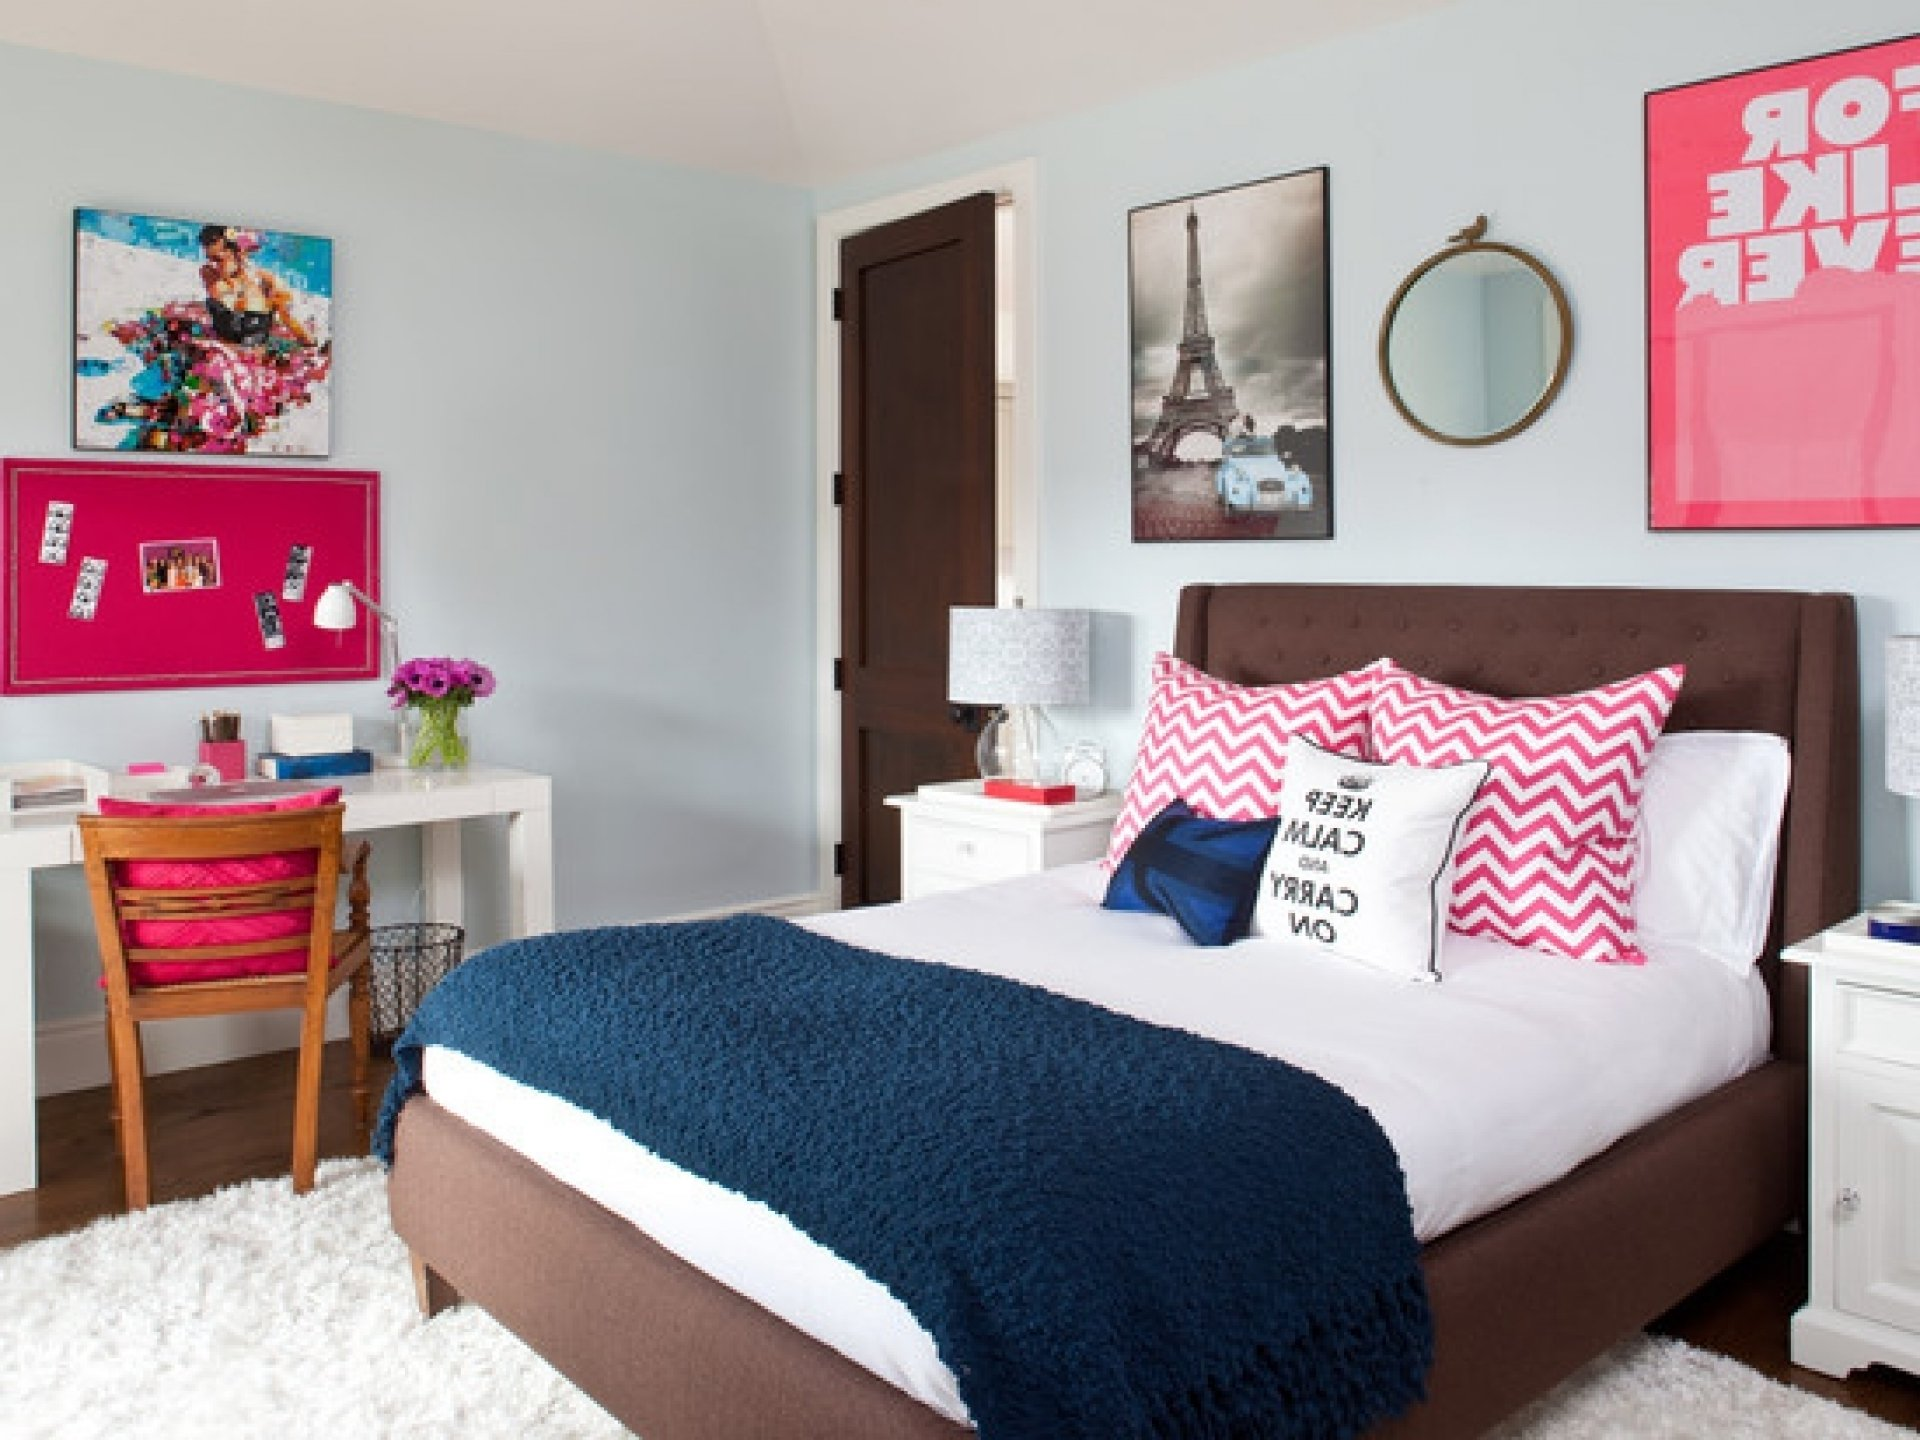 10 Most Recommended Ideas For Teenage Girls Rooms bedroom designs for a teenage girl unique teen girl bedroom ideas 2 2020